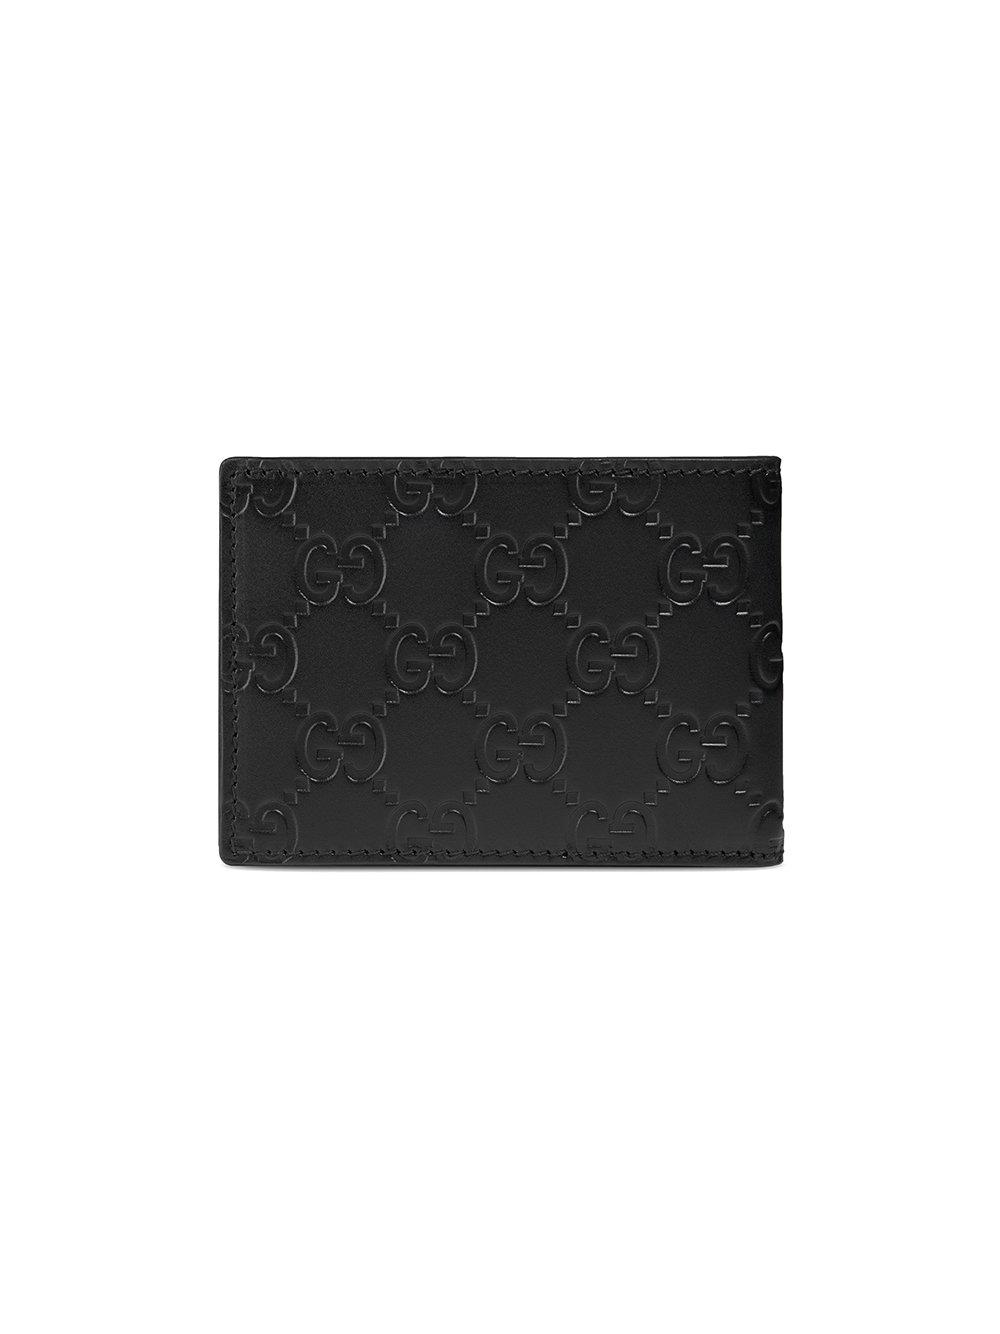 02b42f4ef3e Lyst - Gucci Signature Wallet in Black for Men - Save 33%